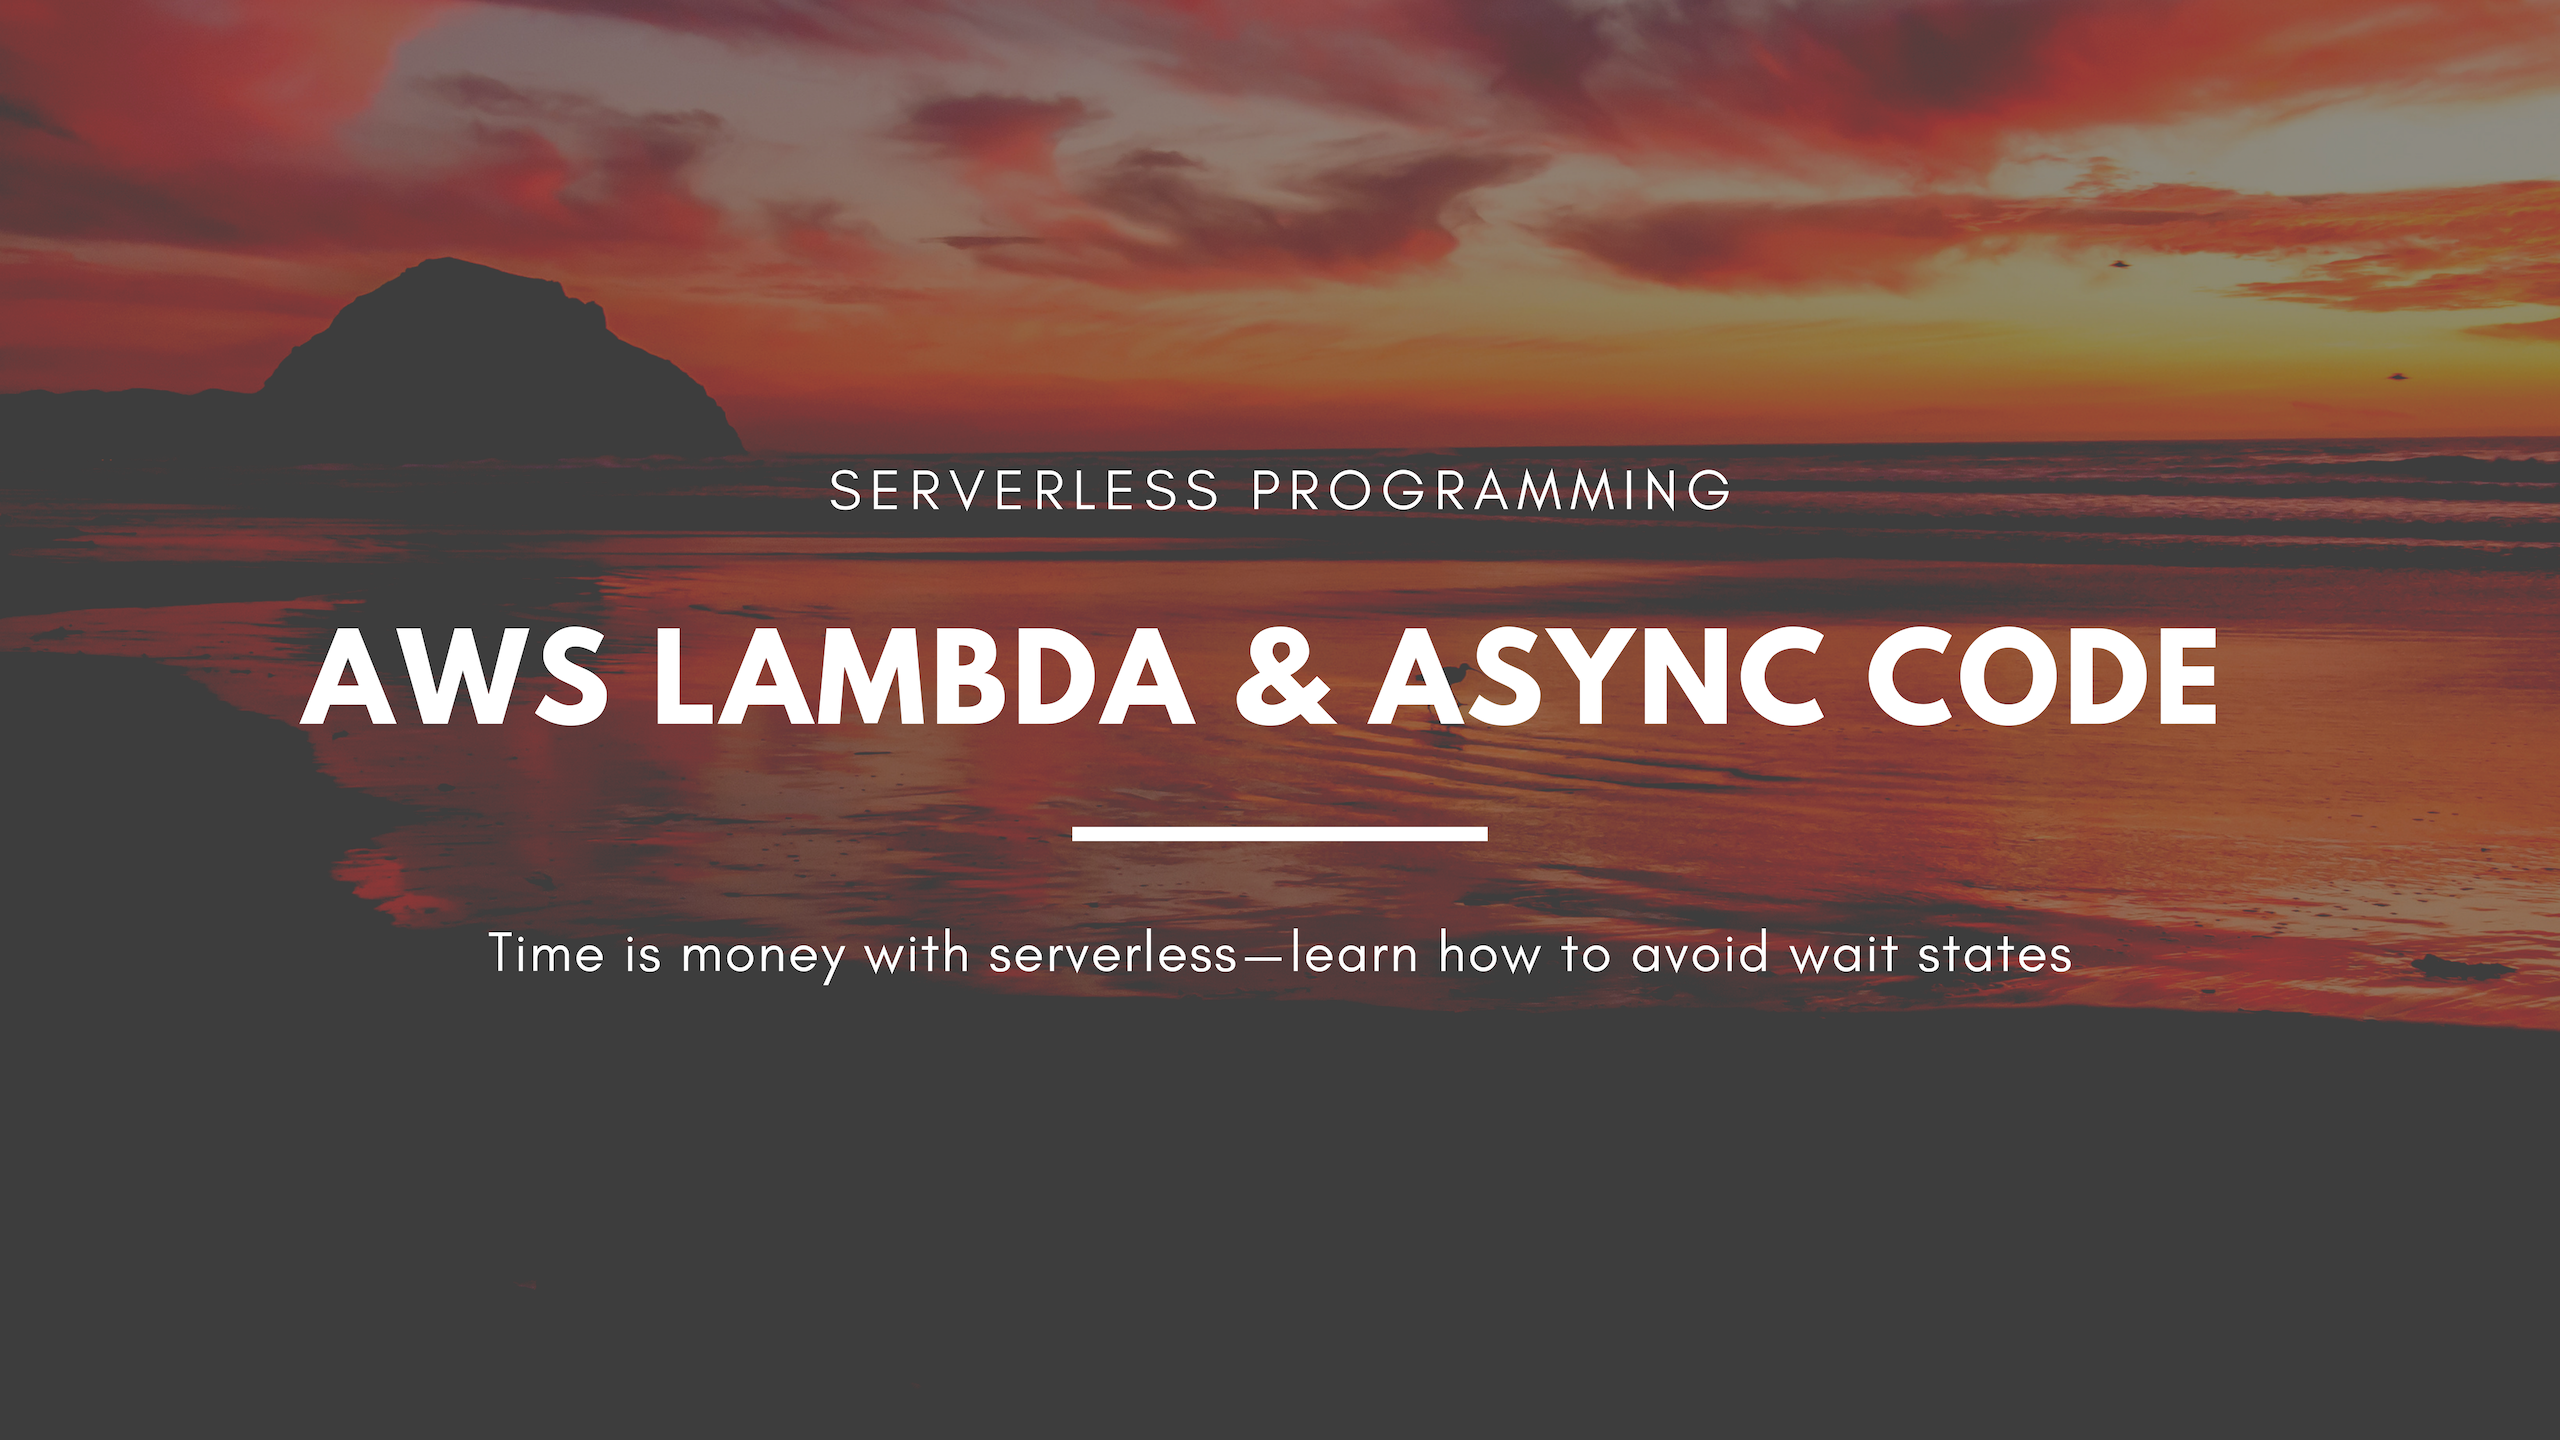 Save time and money with AWS Lambda using asynchronous